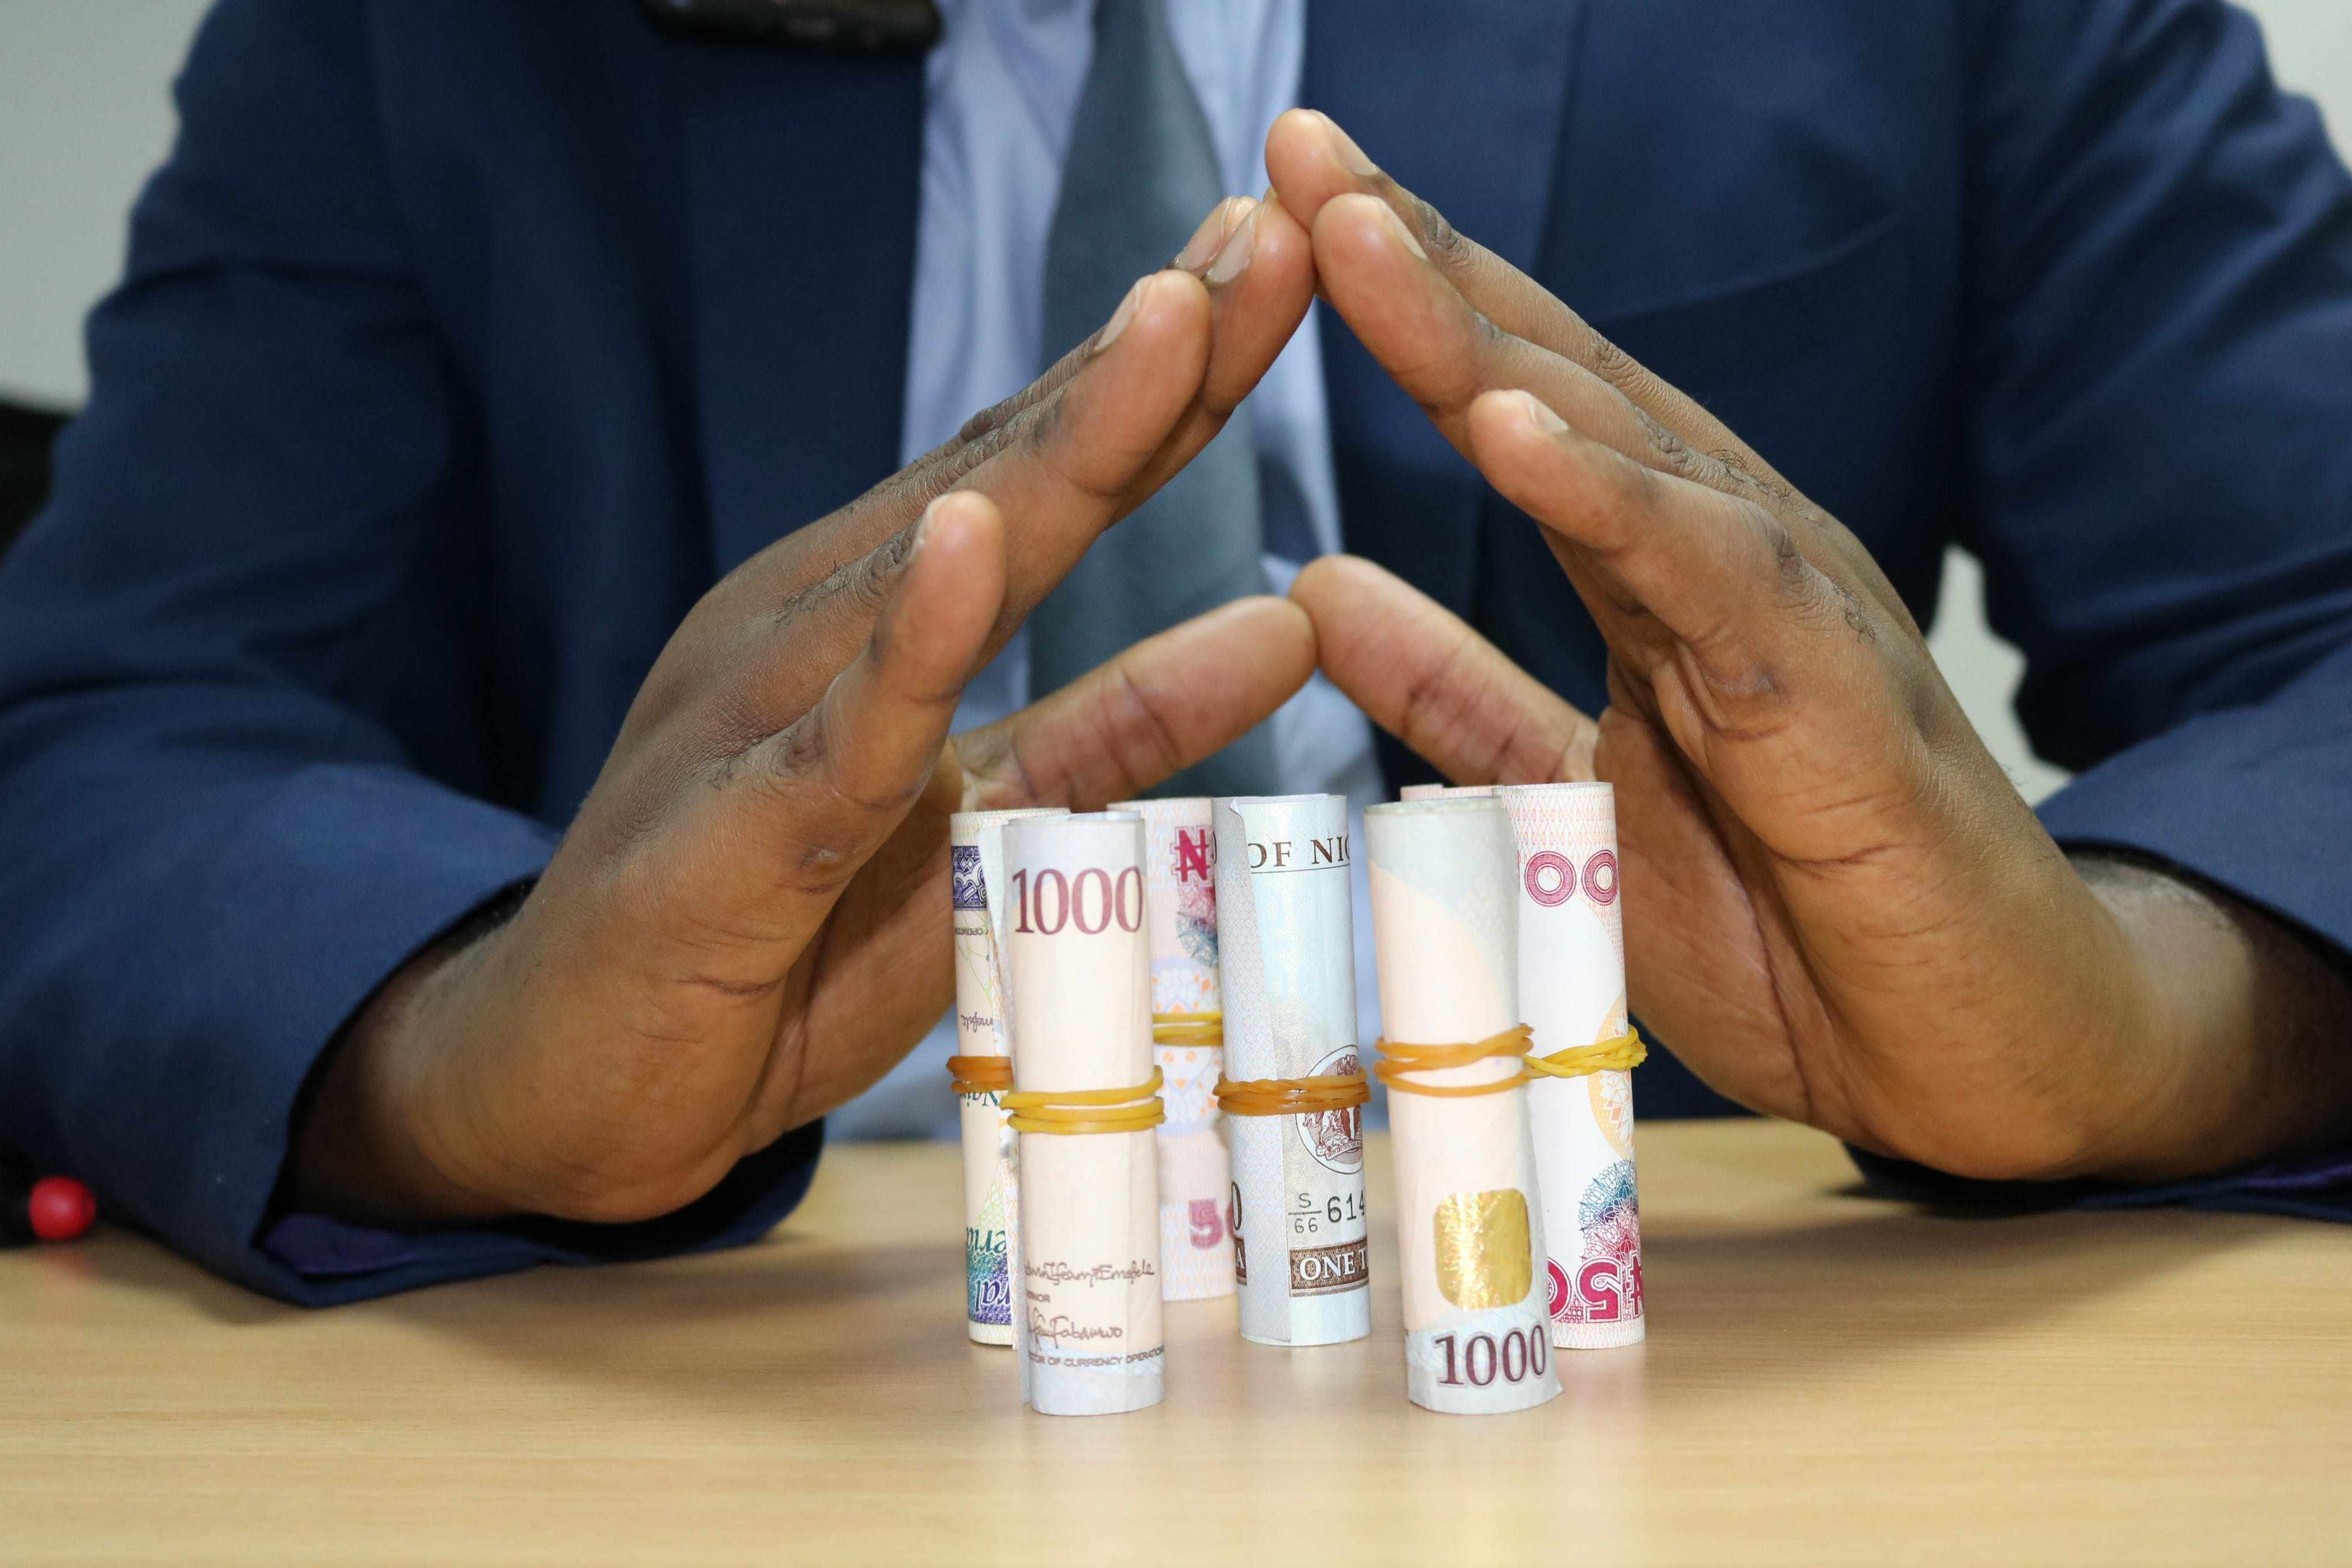 Free stock photo of protected Nigerian currency